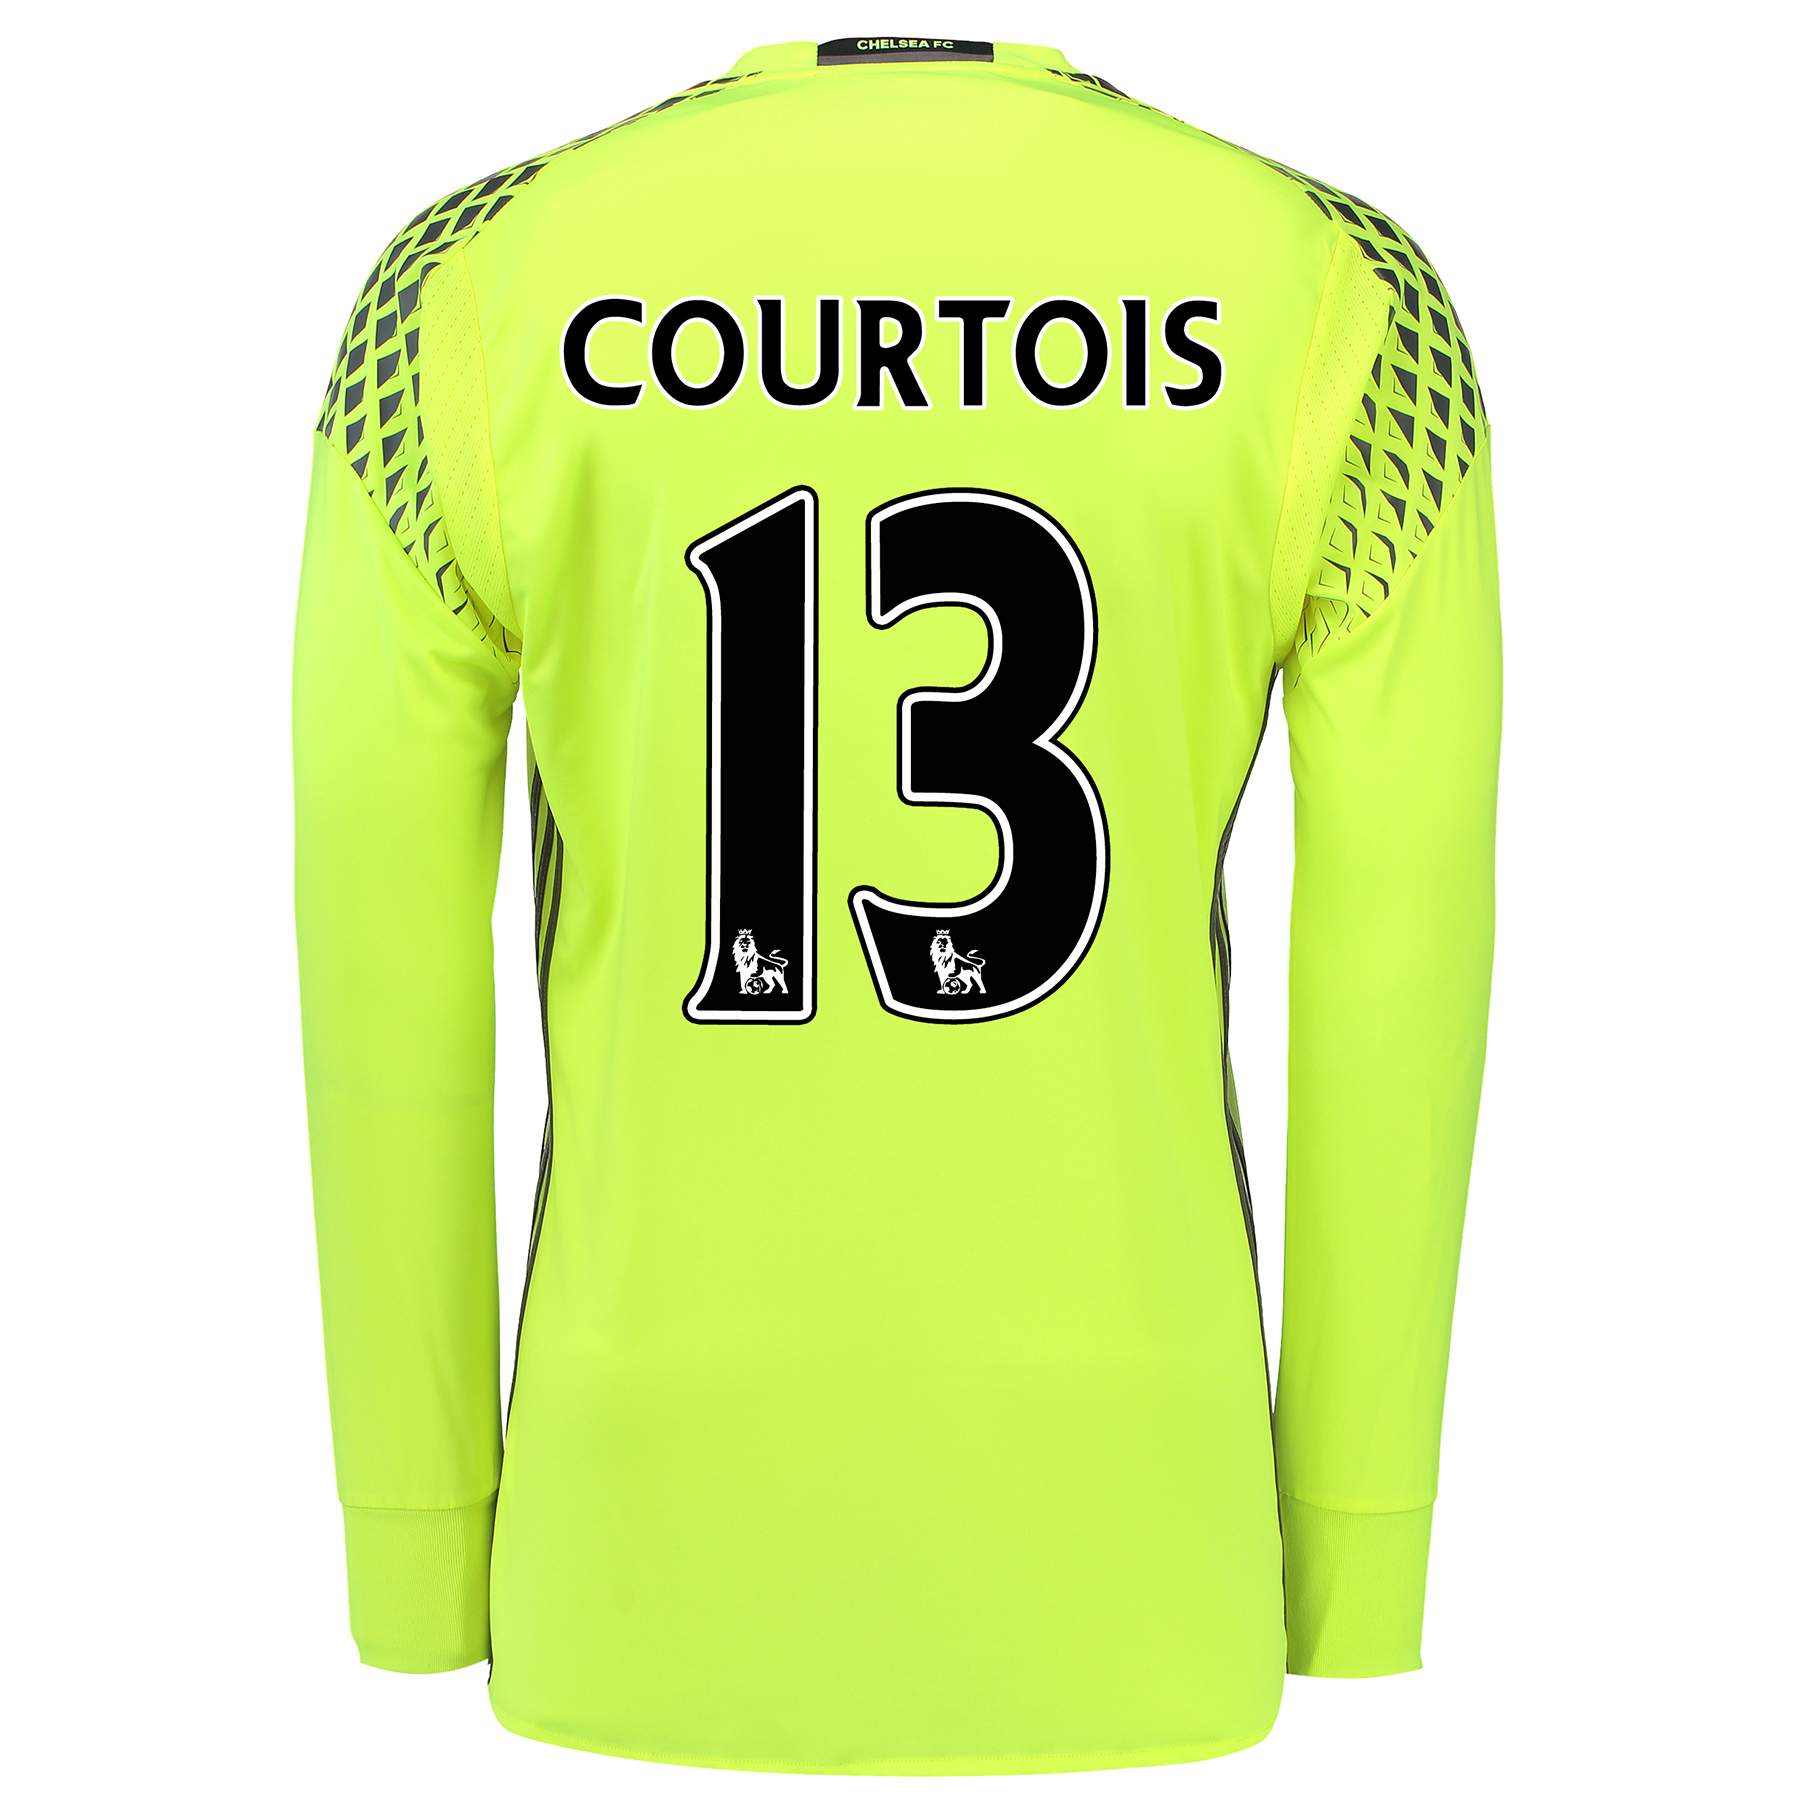 Shop Courtois Printed Shirts